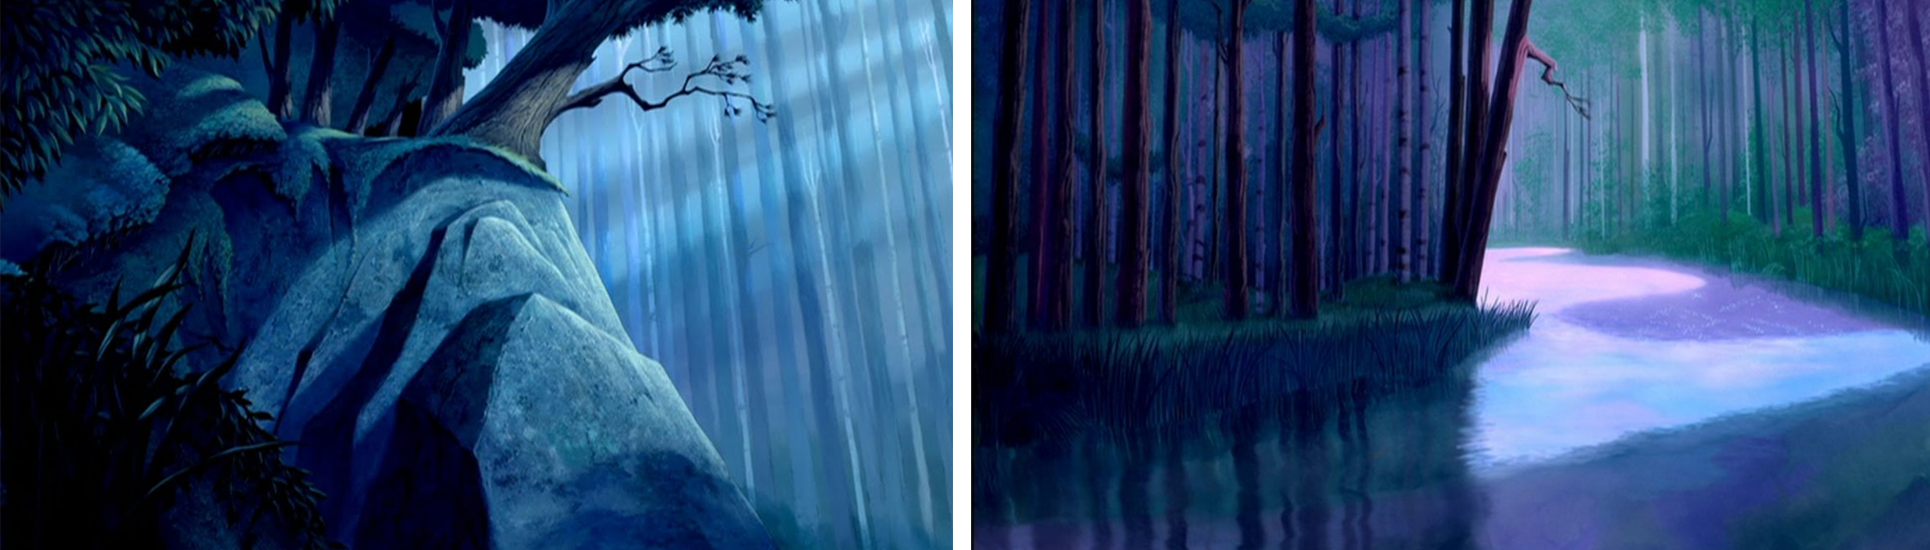 Background design de Pocahontas inspiration Huygens illustration animee par Parallel Studio